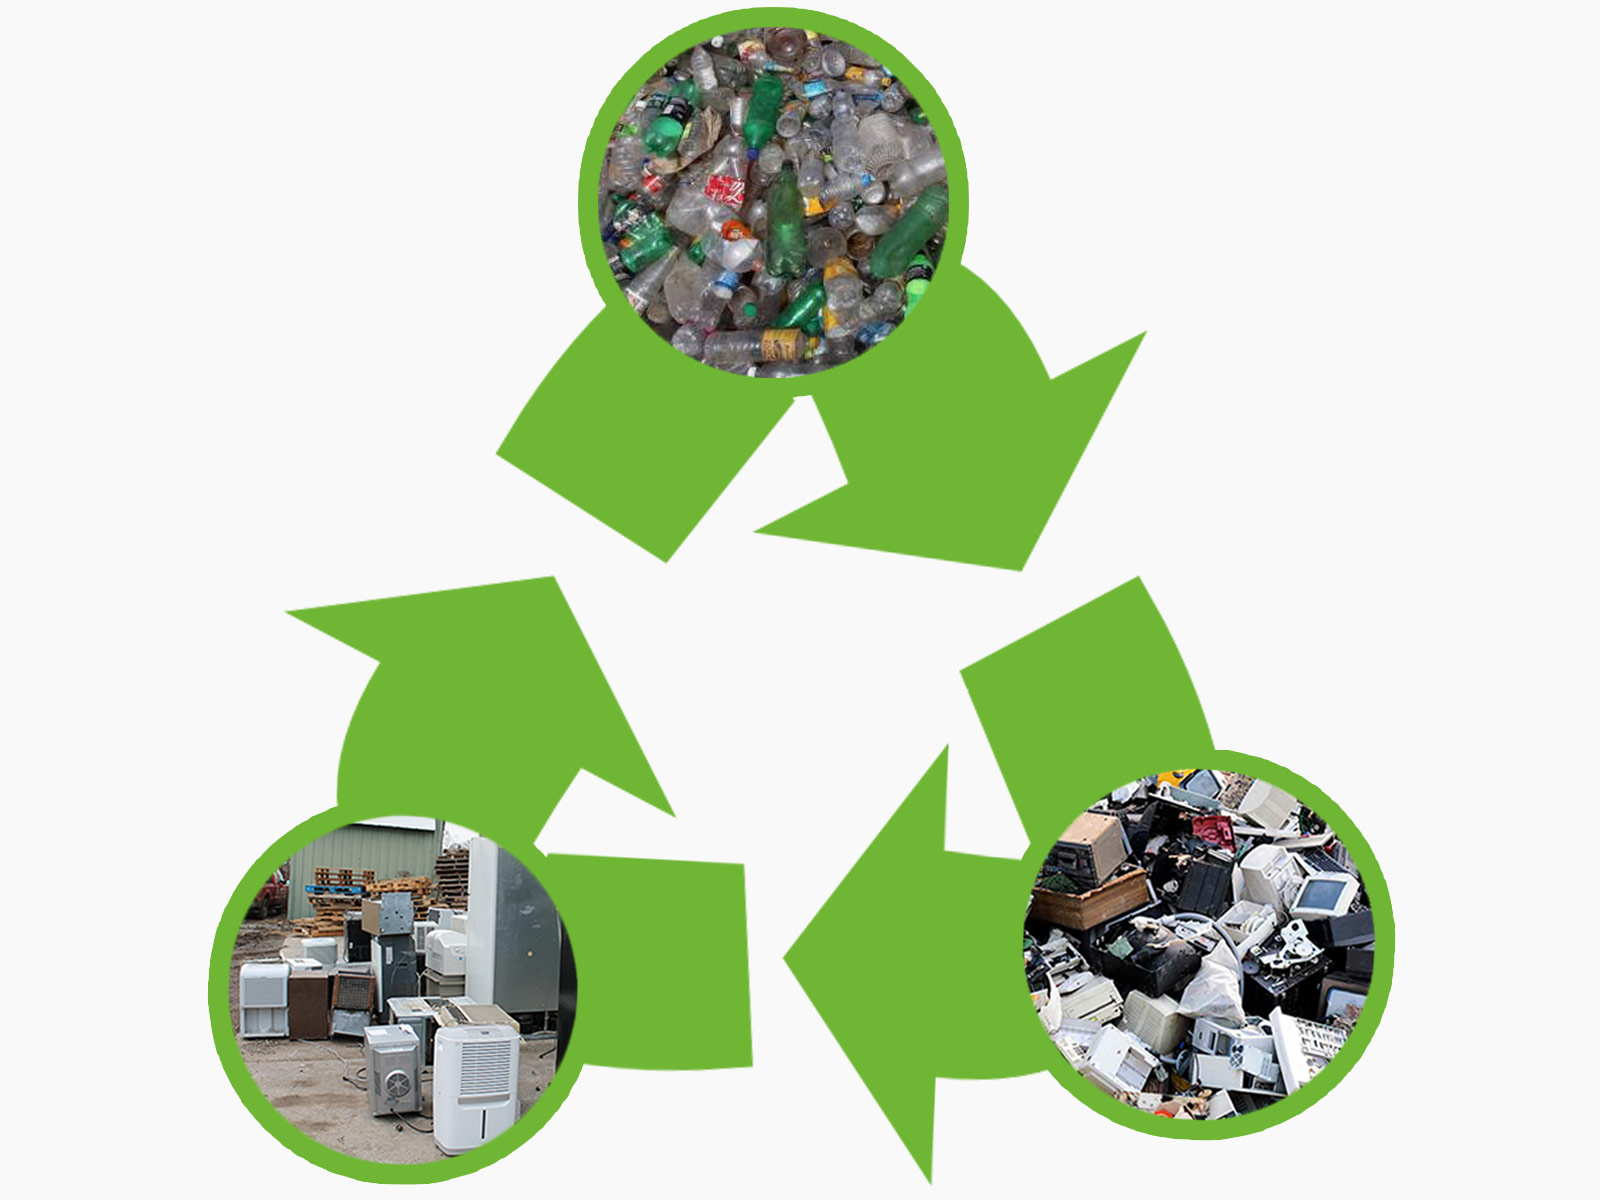 Recycle- Reuse and Disposal by RPlanet